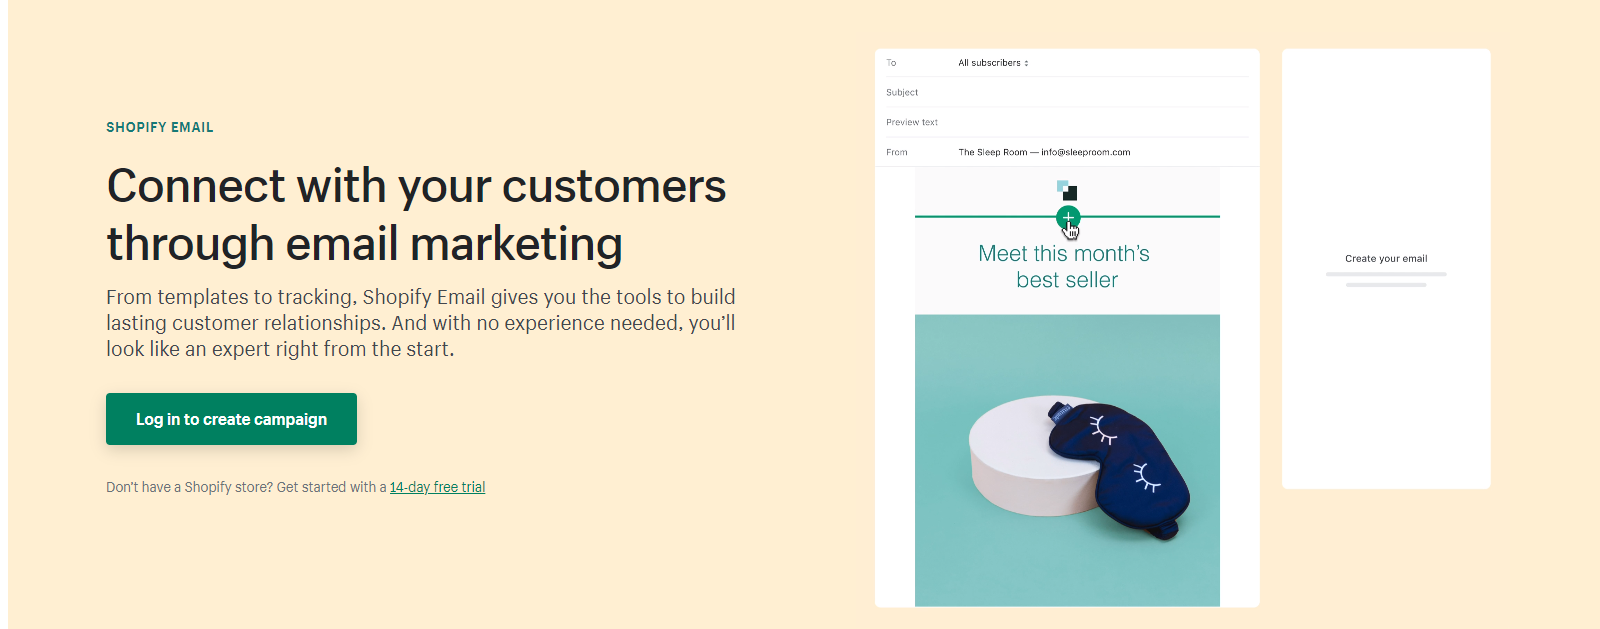 shopify email tool